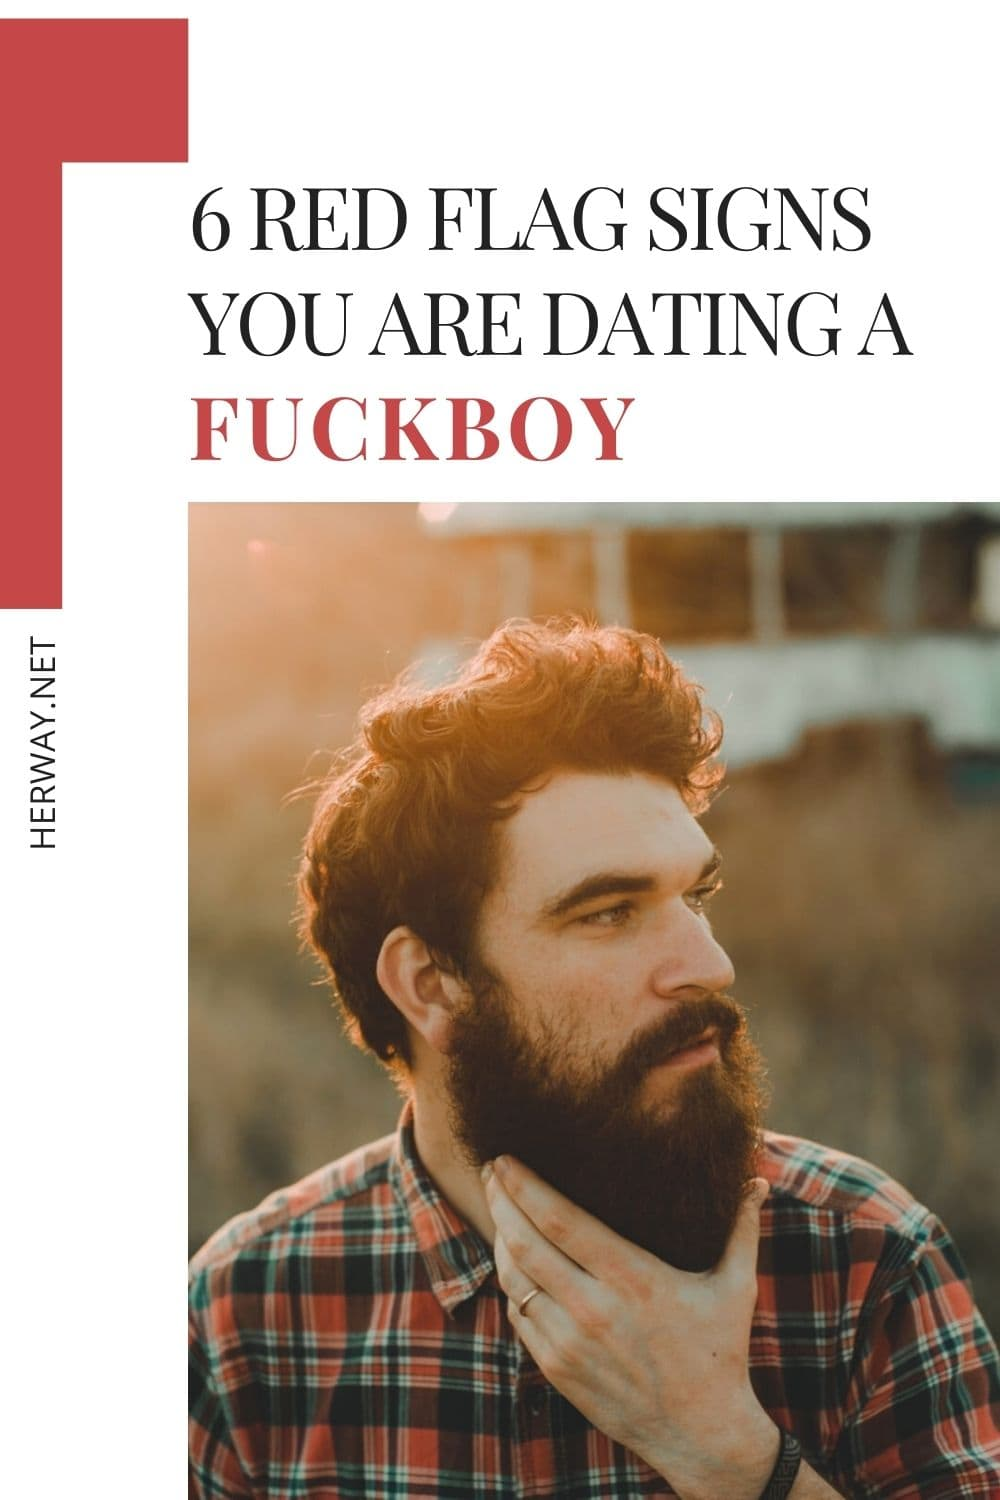 6 Red Flag Signs You Are Dating A Fuckboy